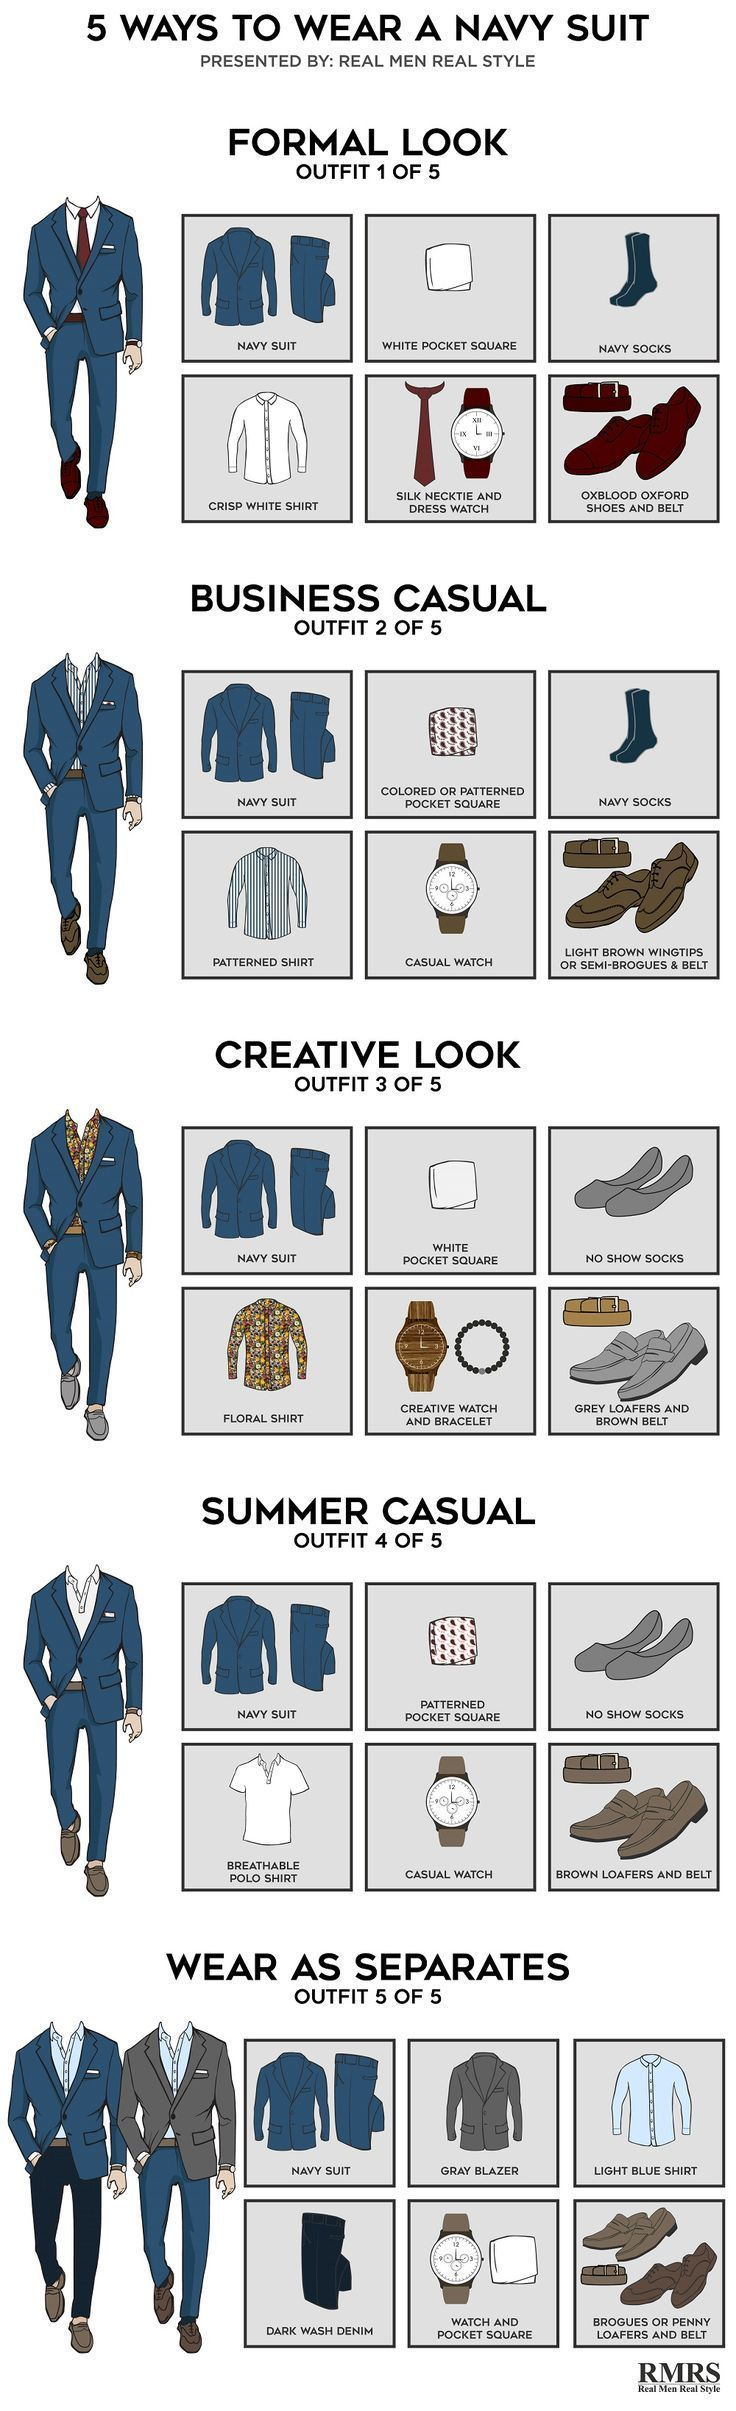 5 Outfits From One Navy Suit – Infographic